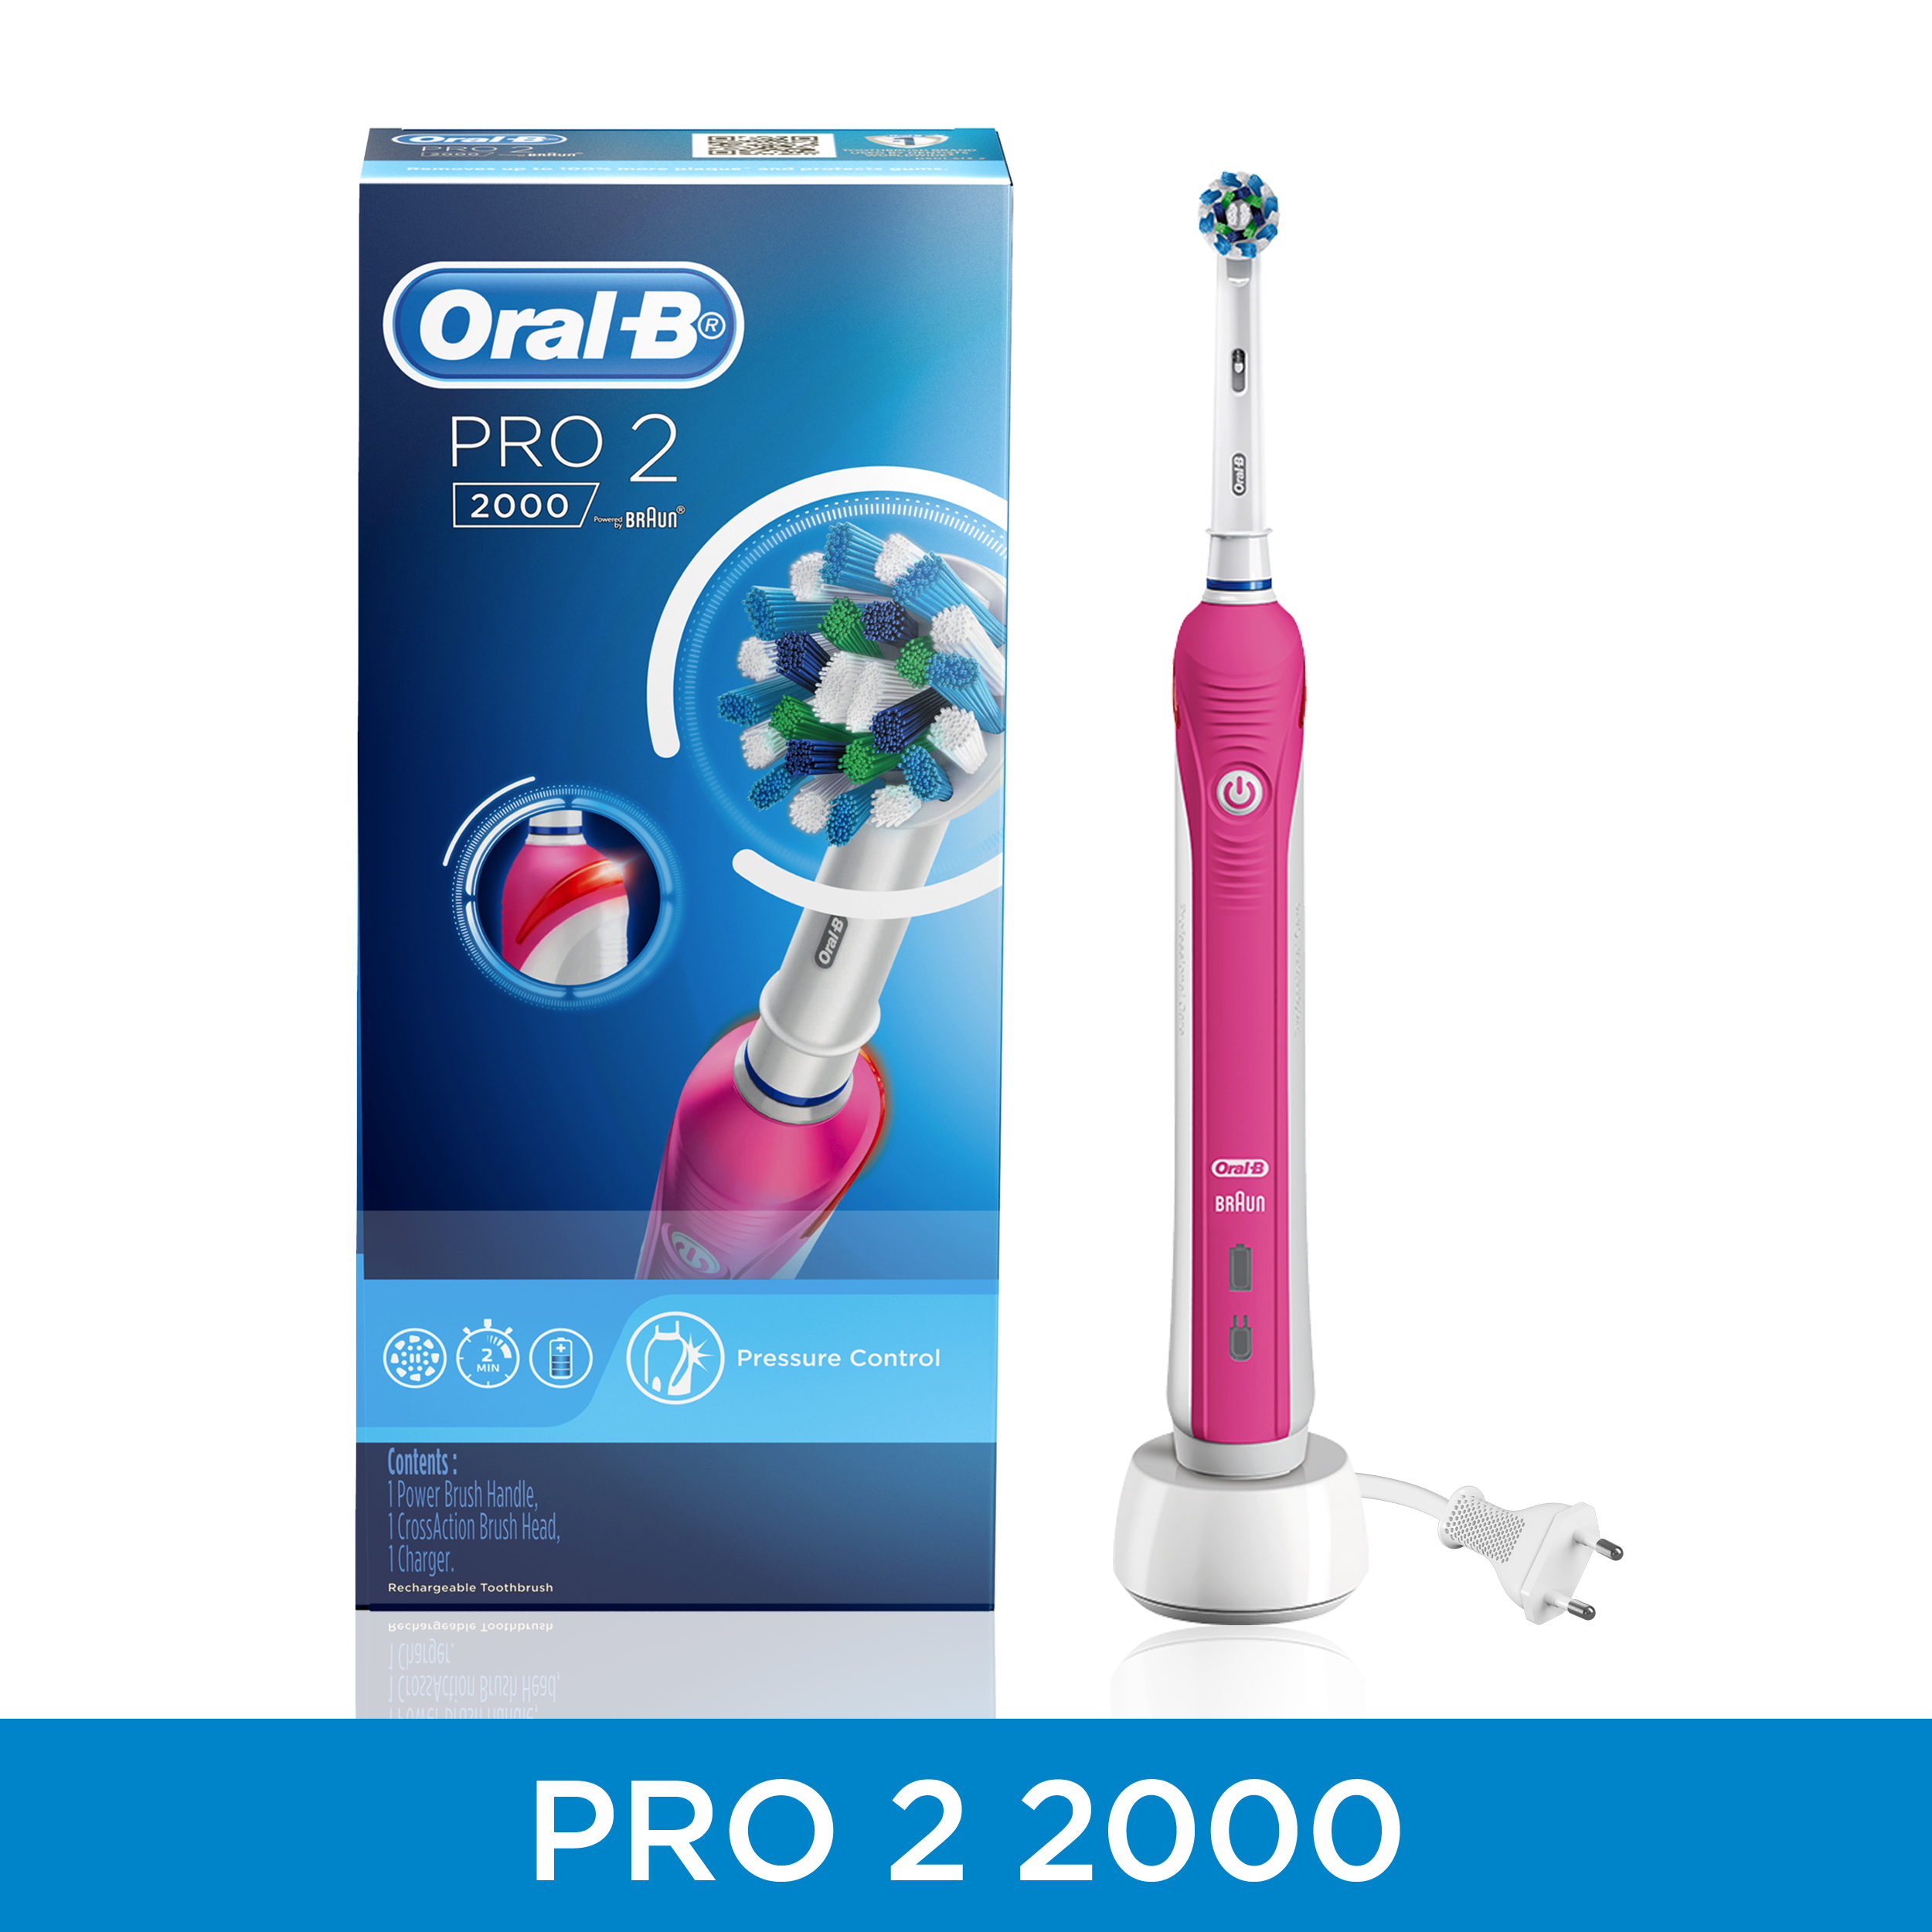 Oral-B PRO 2 2000 Pink Electric Rechargeable Toothbrush